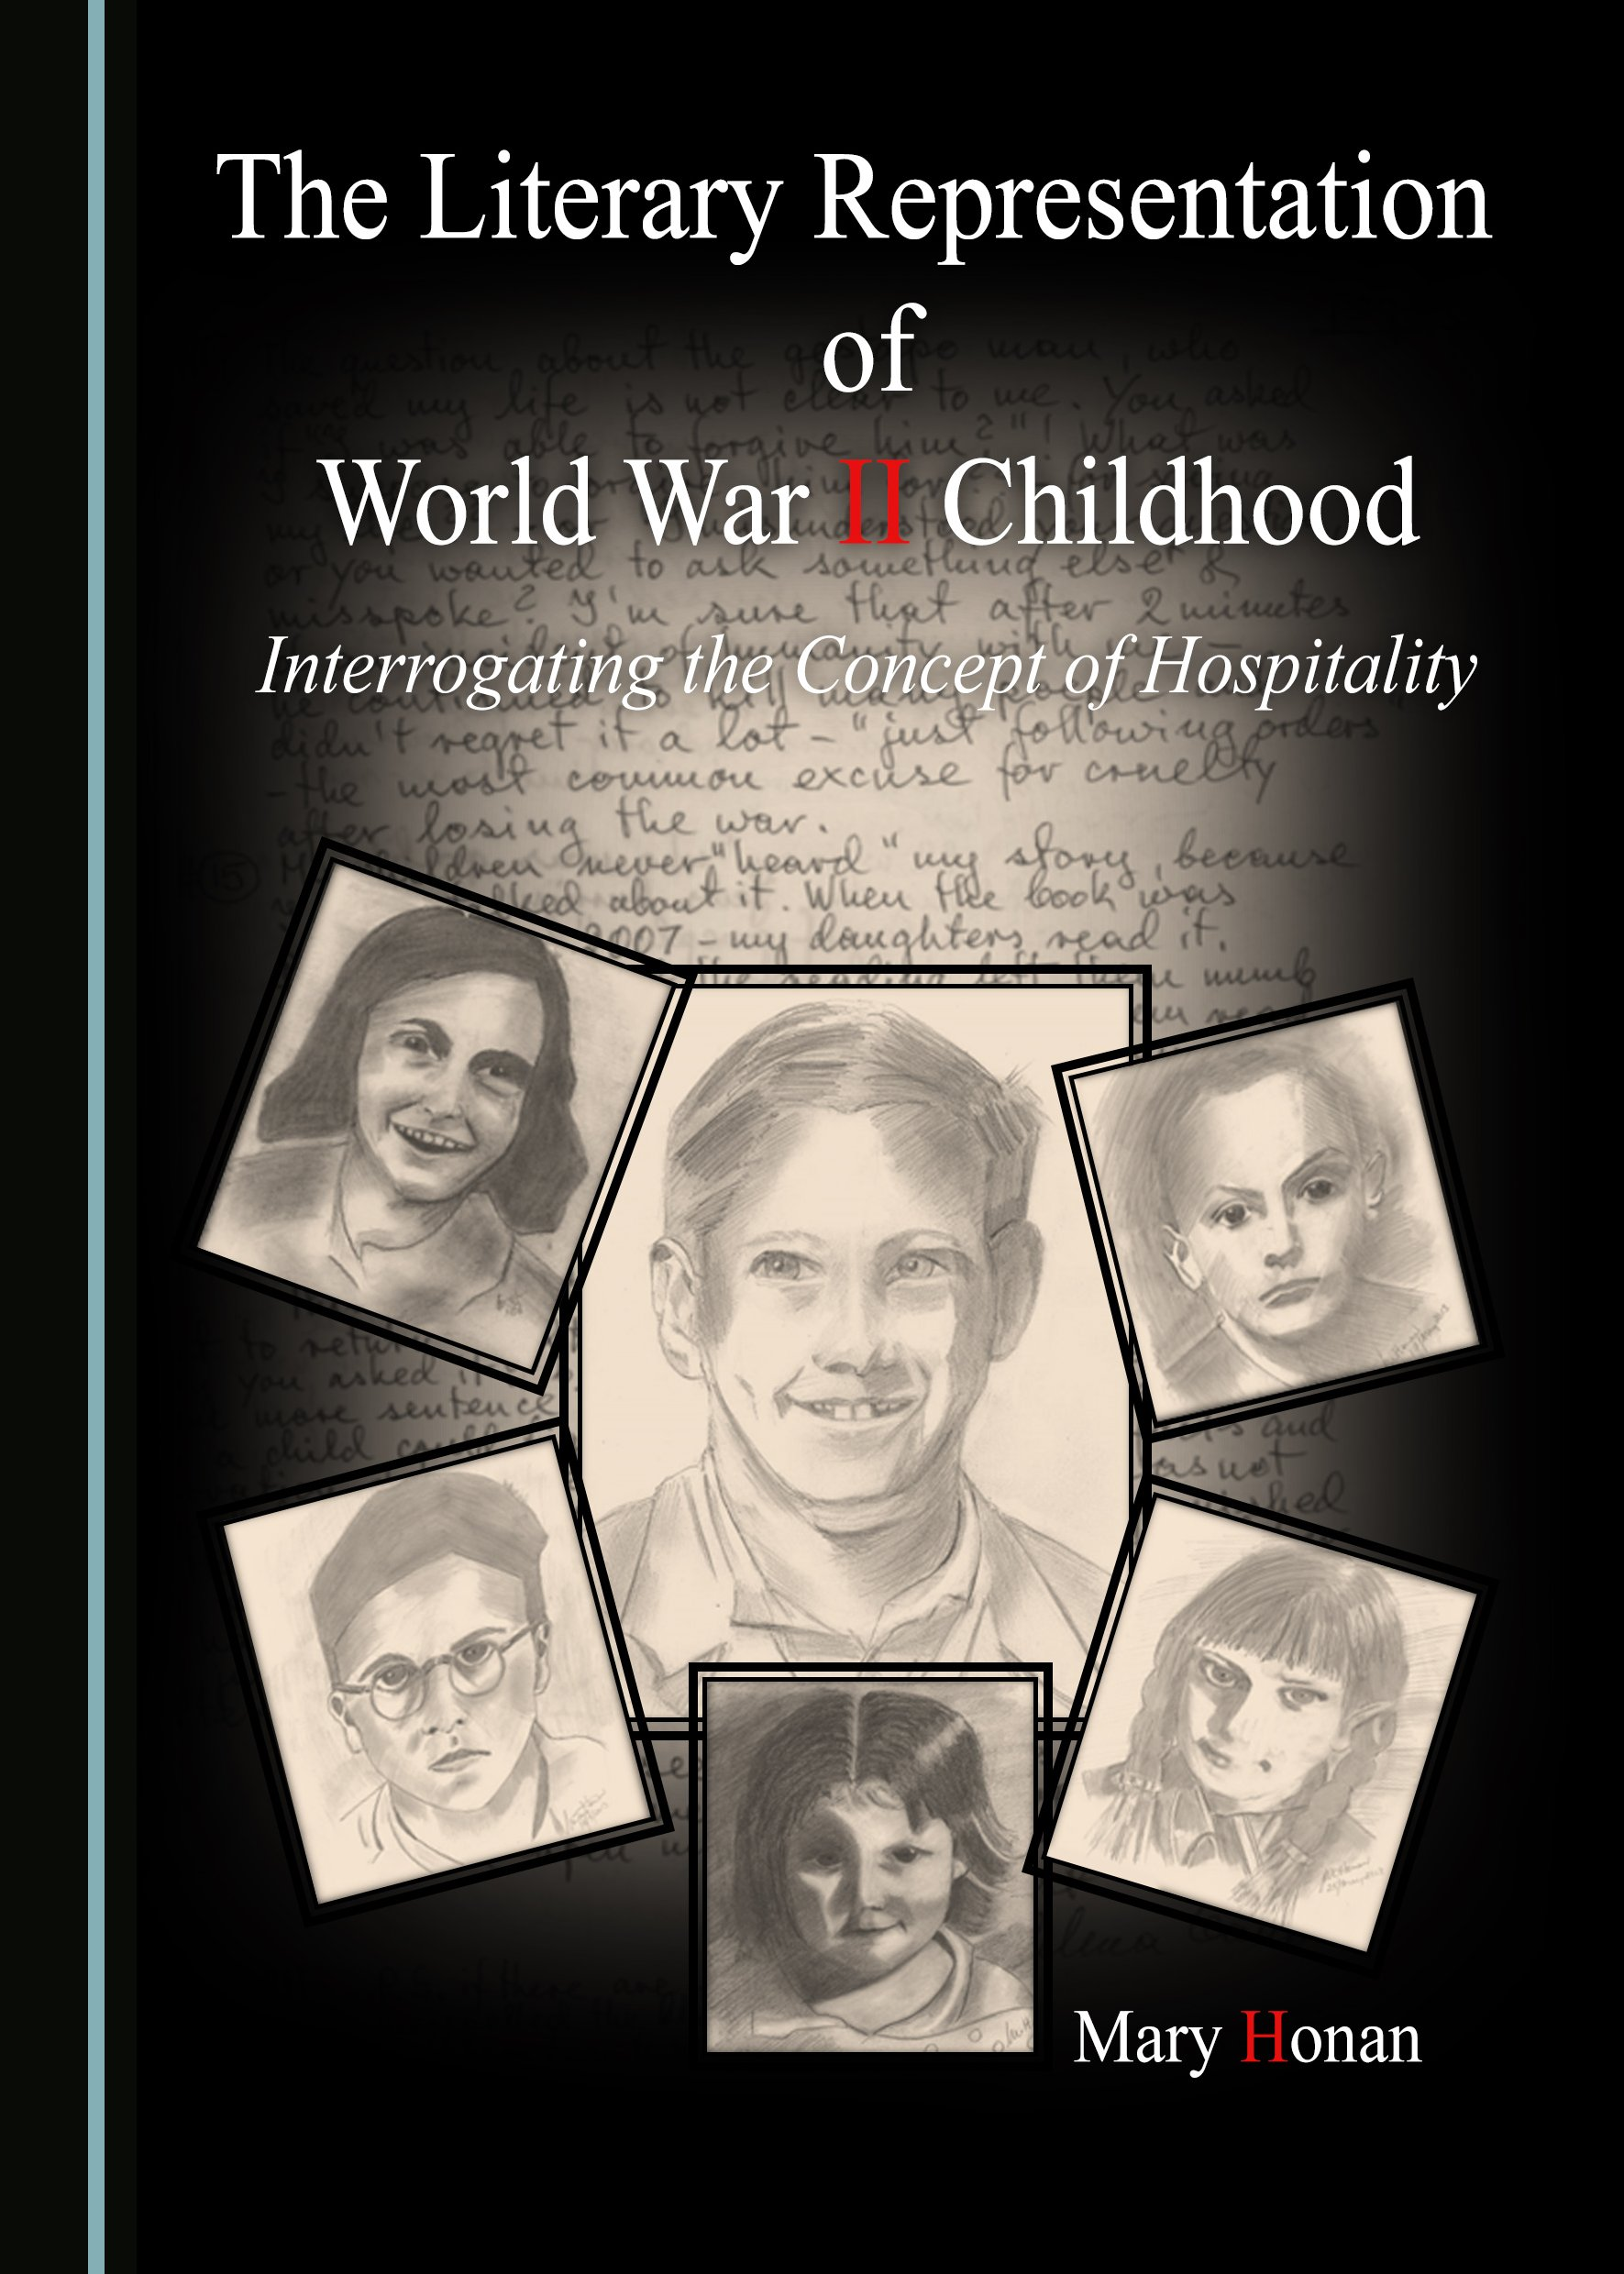 The Literary Representation of World War II Childhood: Interrogating the Concept of Hospitality